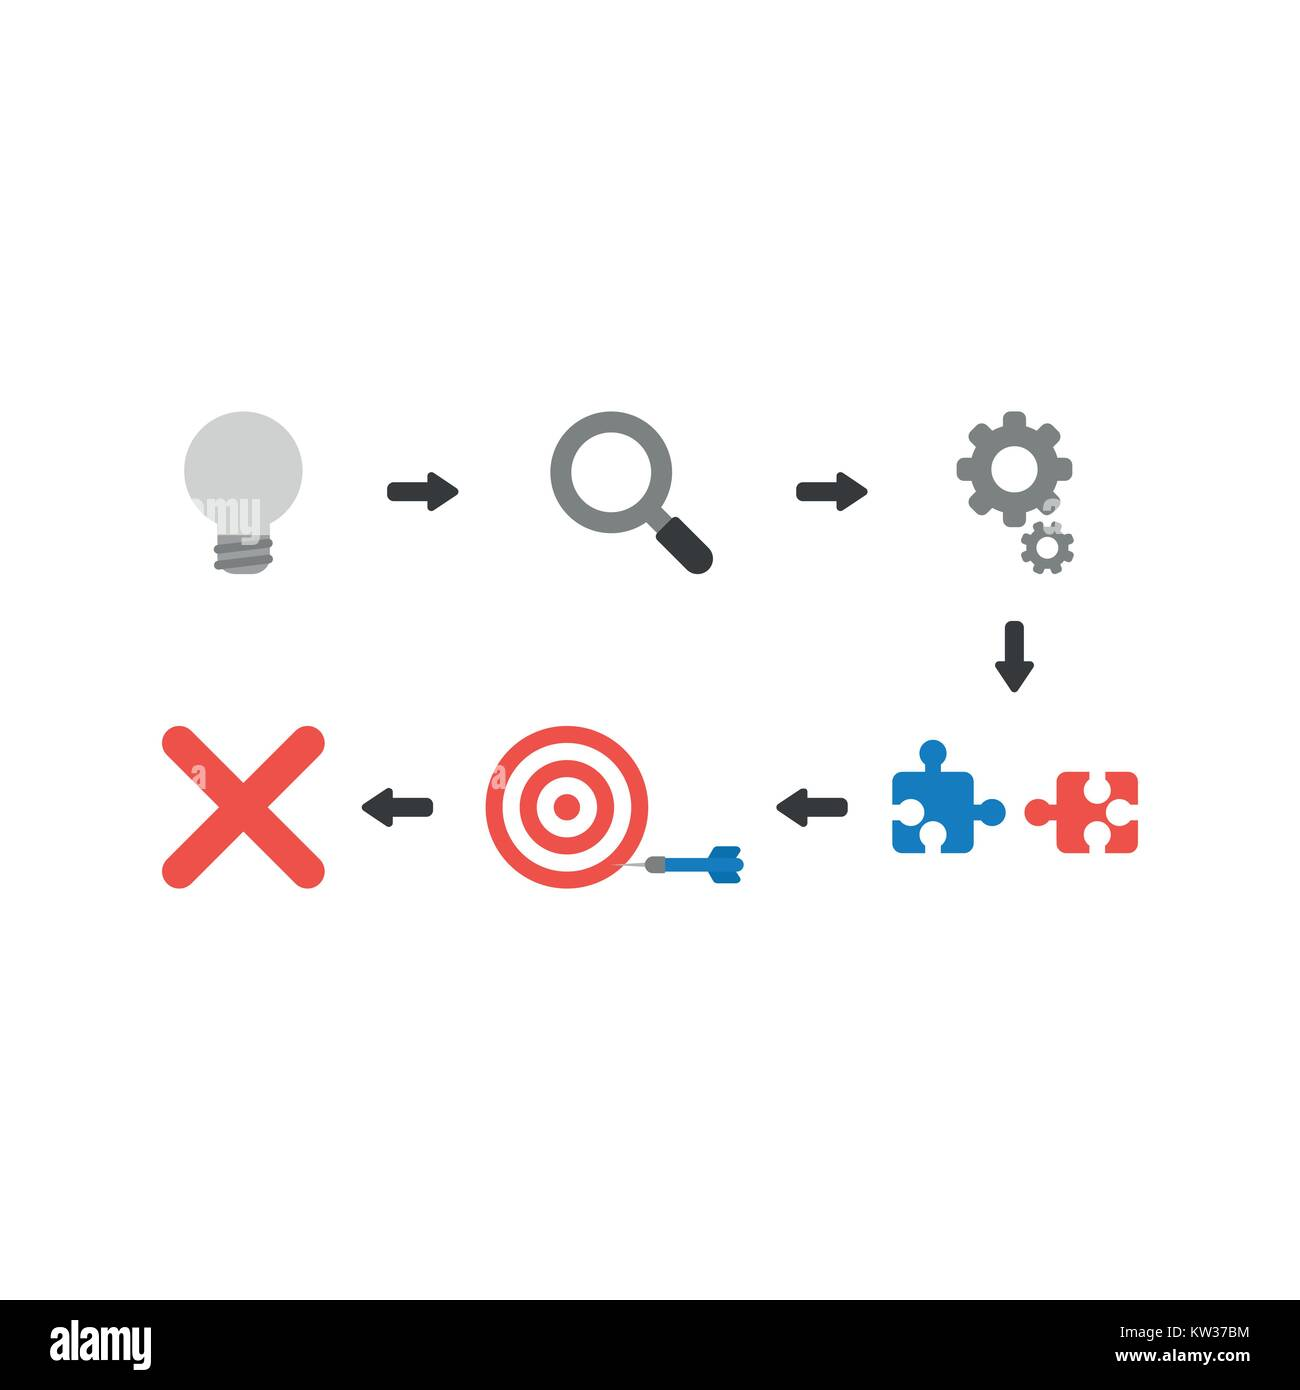 Flat design vector illustration concept of unsuccess with grey light bulb bad idea, magnifying glass, gears, incompatible Stock Vector